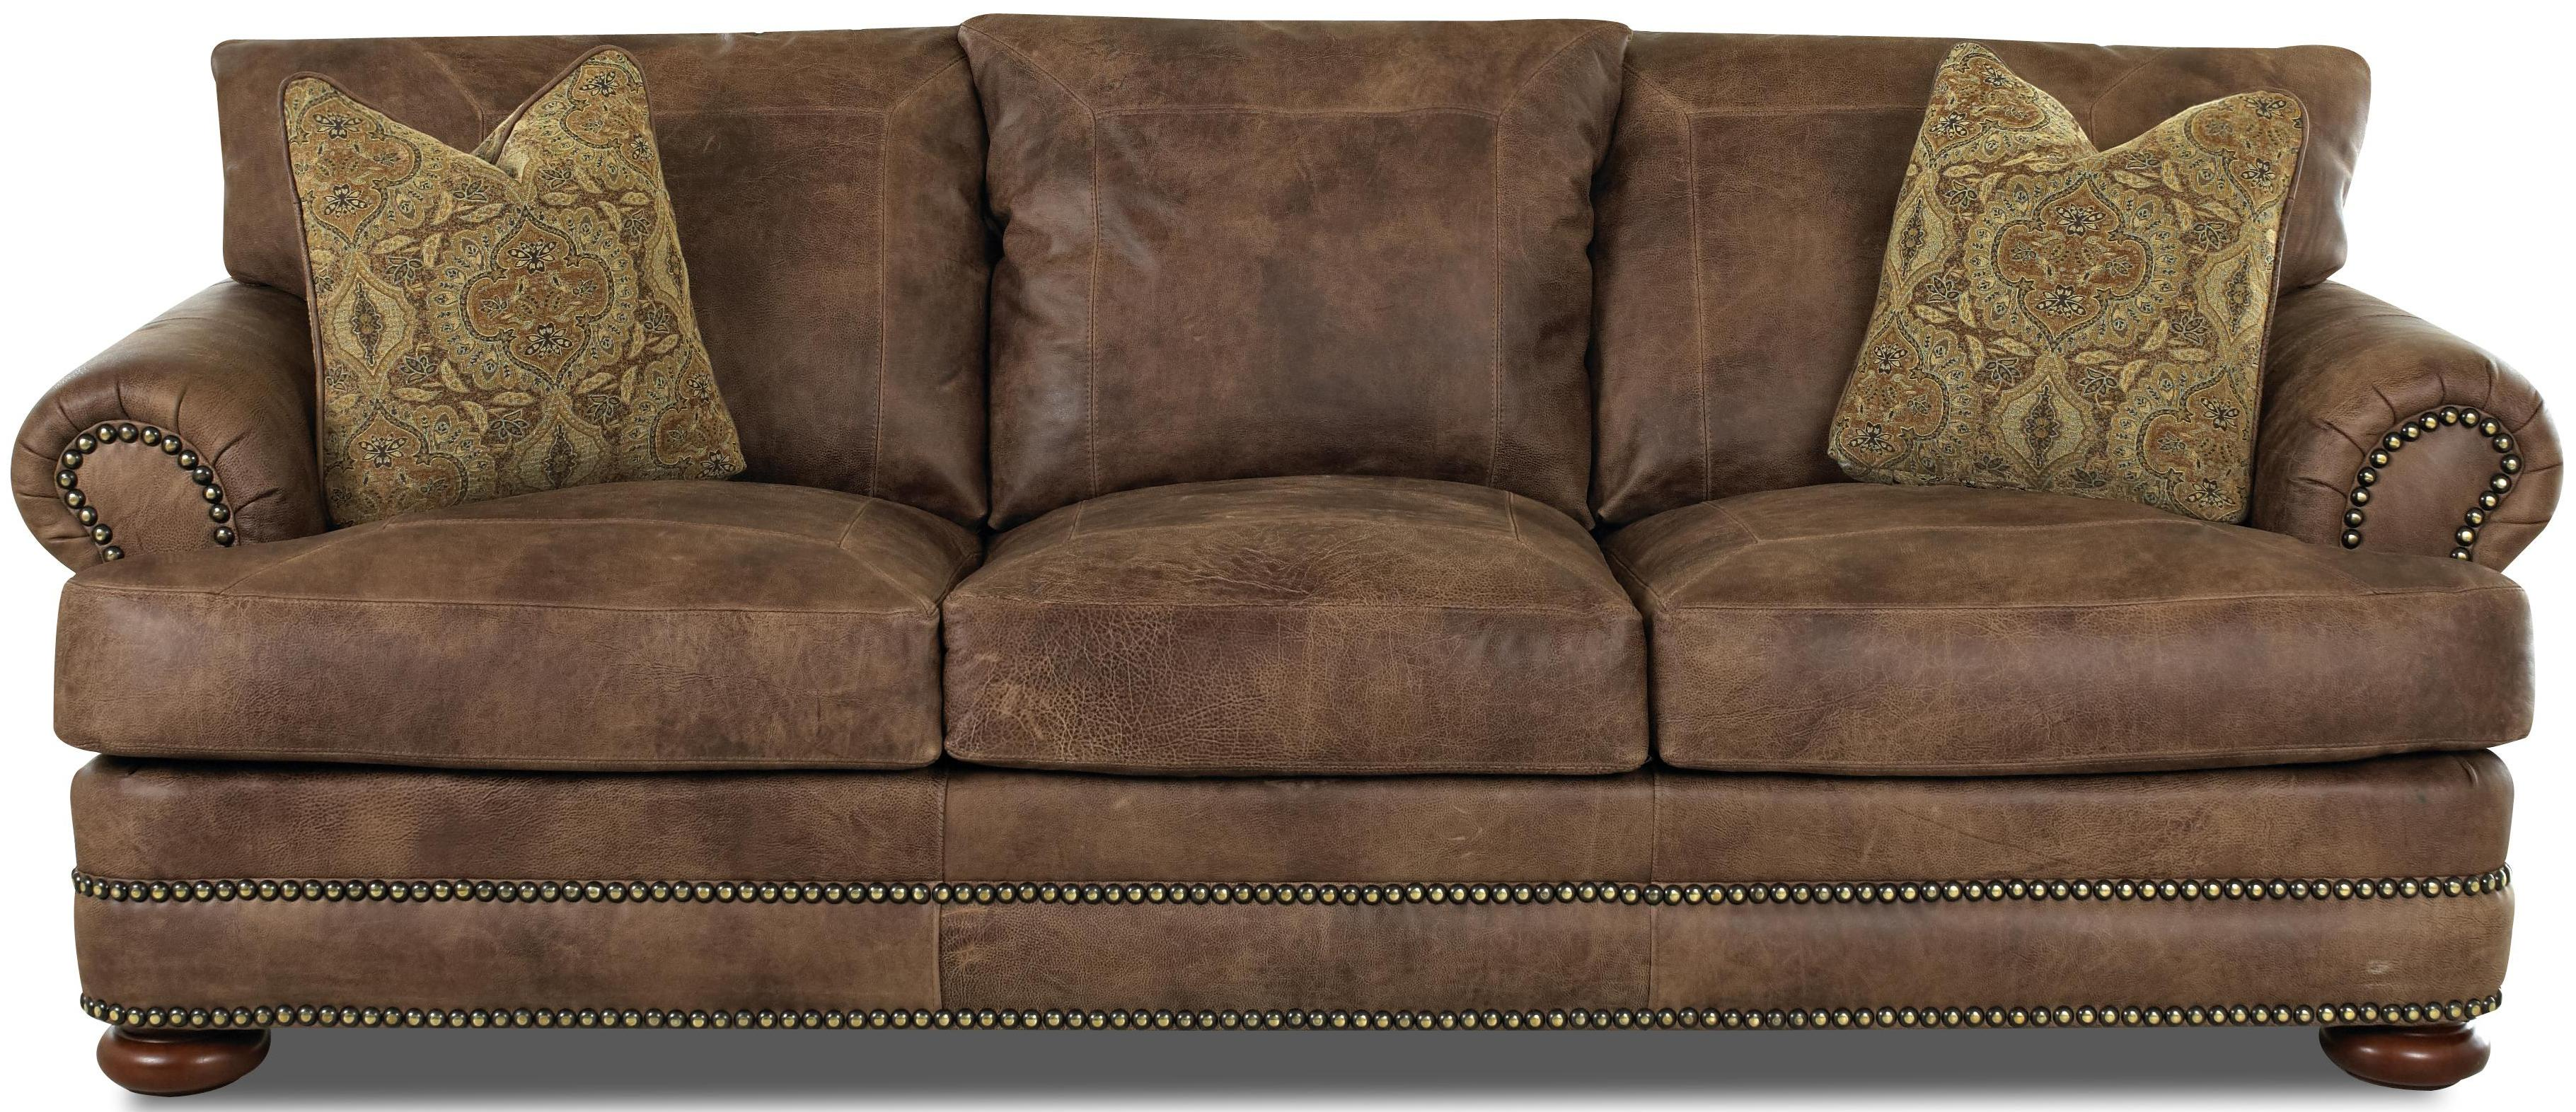 Klaussner Montezuma Ld43800 10 S Casual Style Leather Sofa